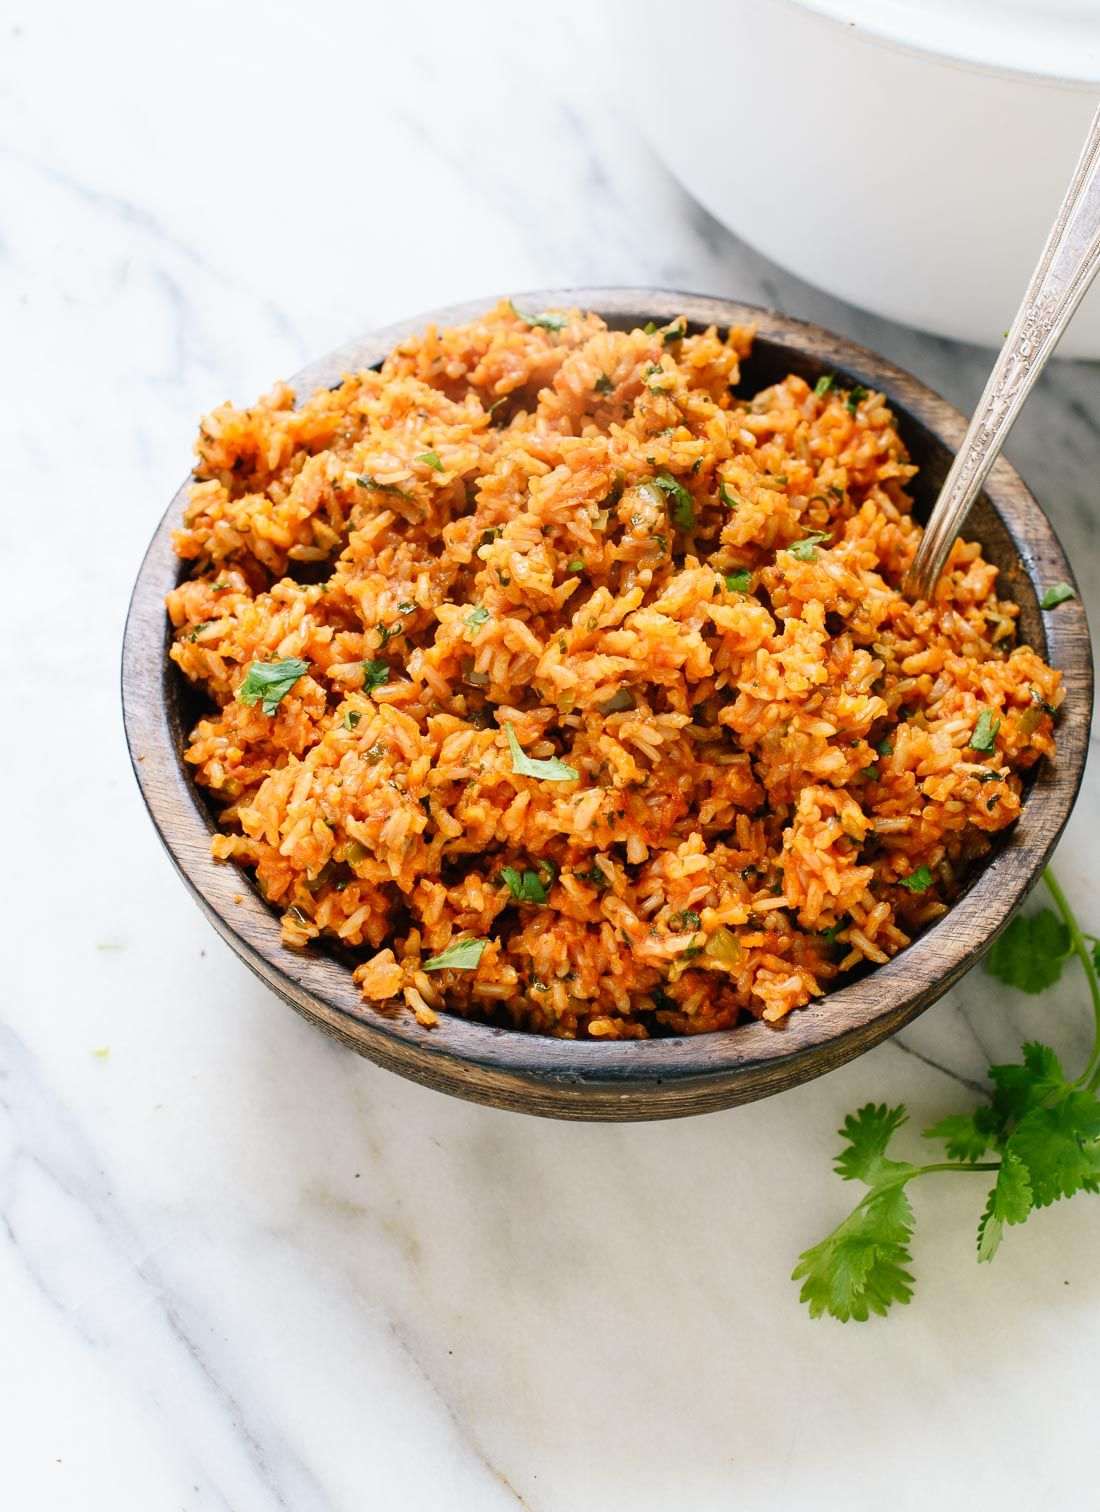 Amazing Mexican brown rice - tastes just like your favorite Mexican restaurant's rice, but made healthier! cookieandkate.com